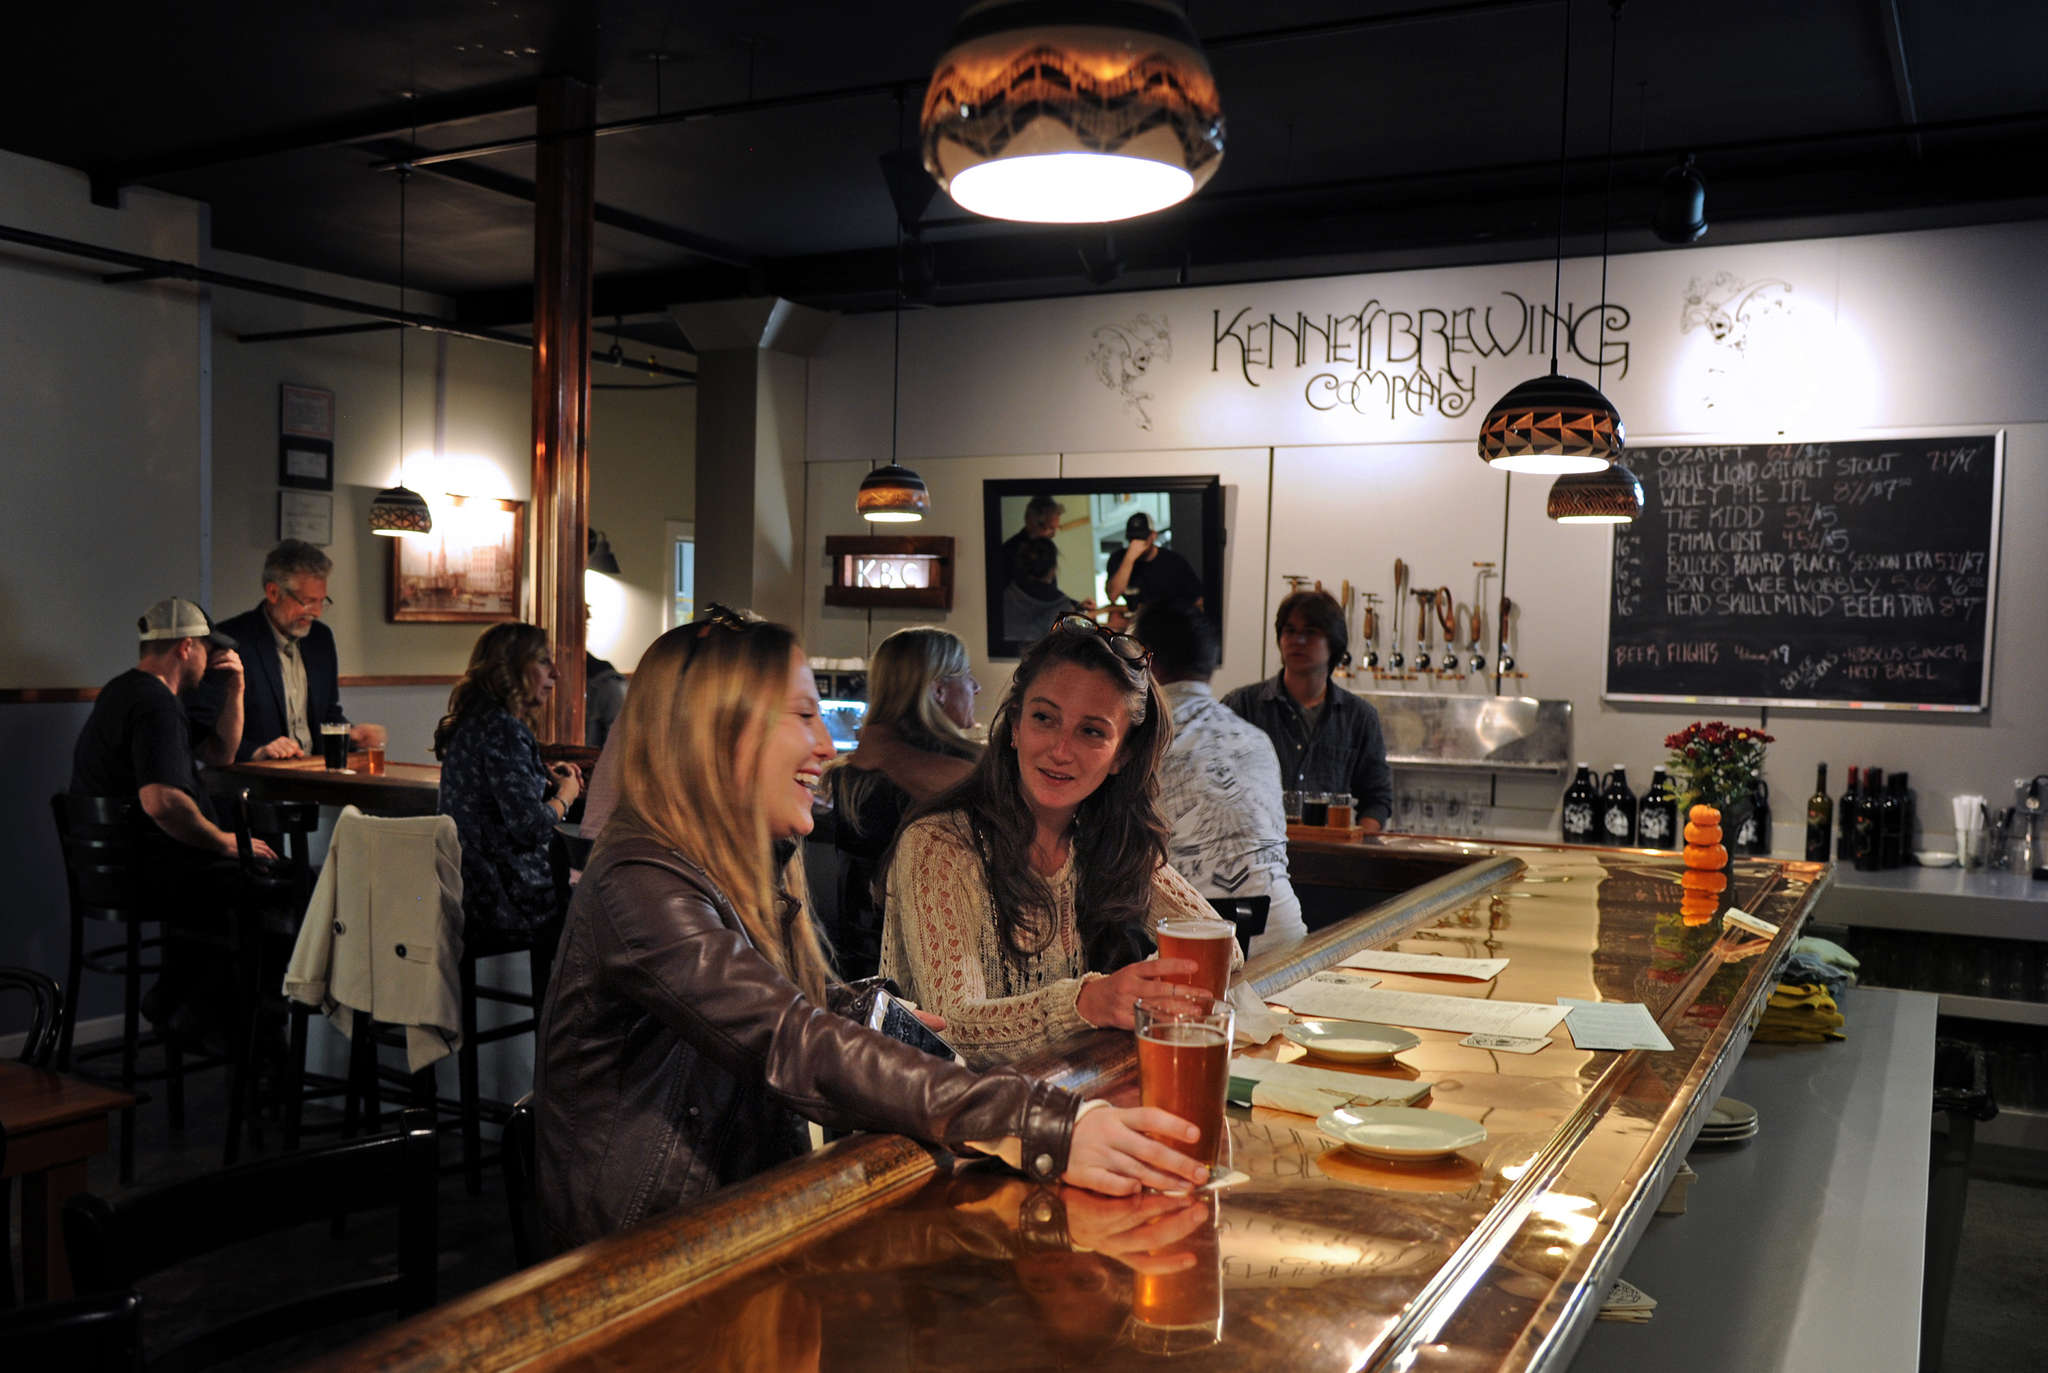 Sisters Caroline (left) and Lauren Brunovszky, both of Kennett Square, at the bar at Kennett Brewing Co.